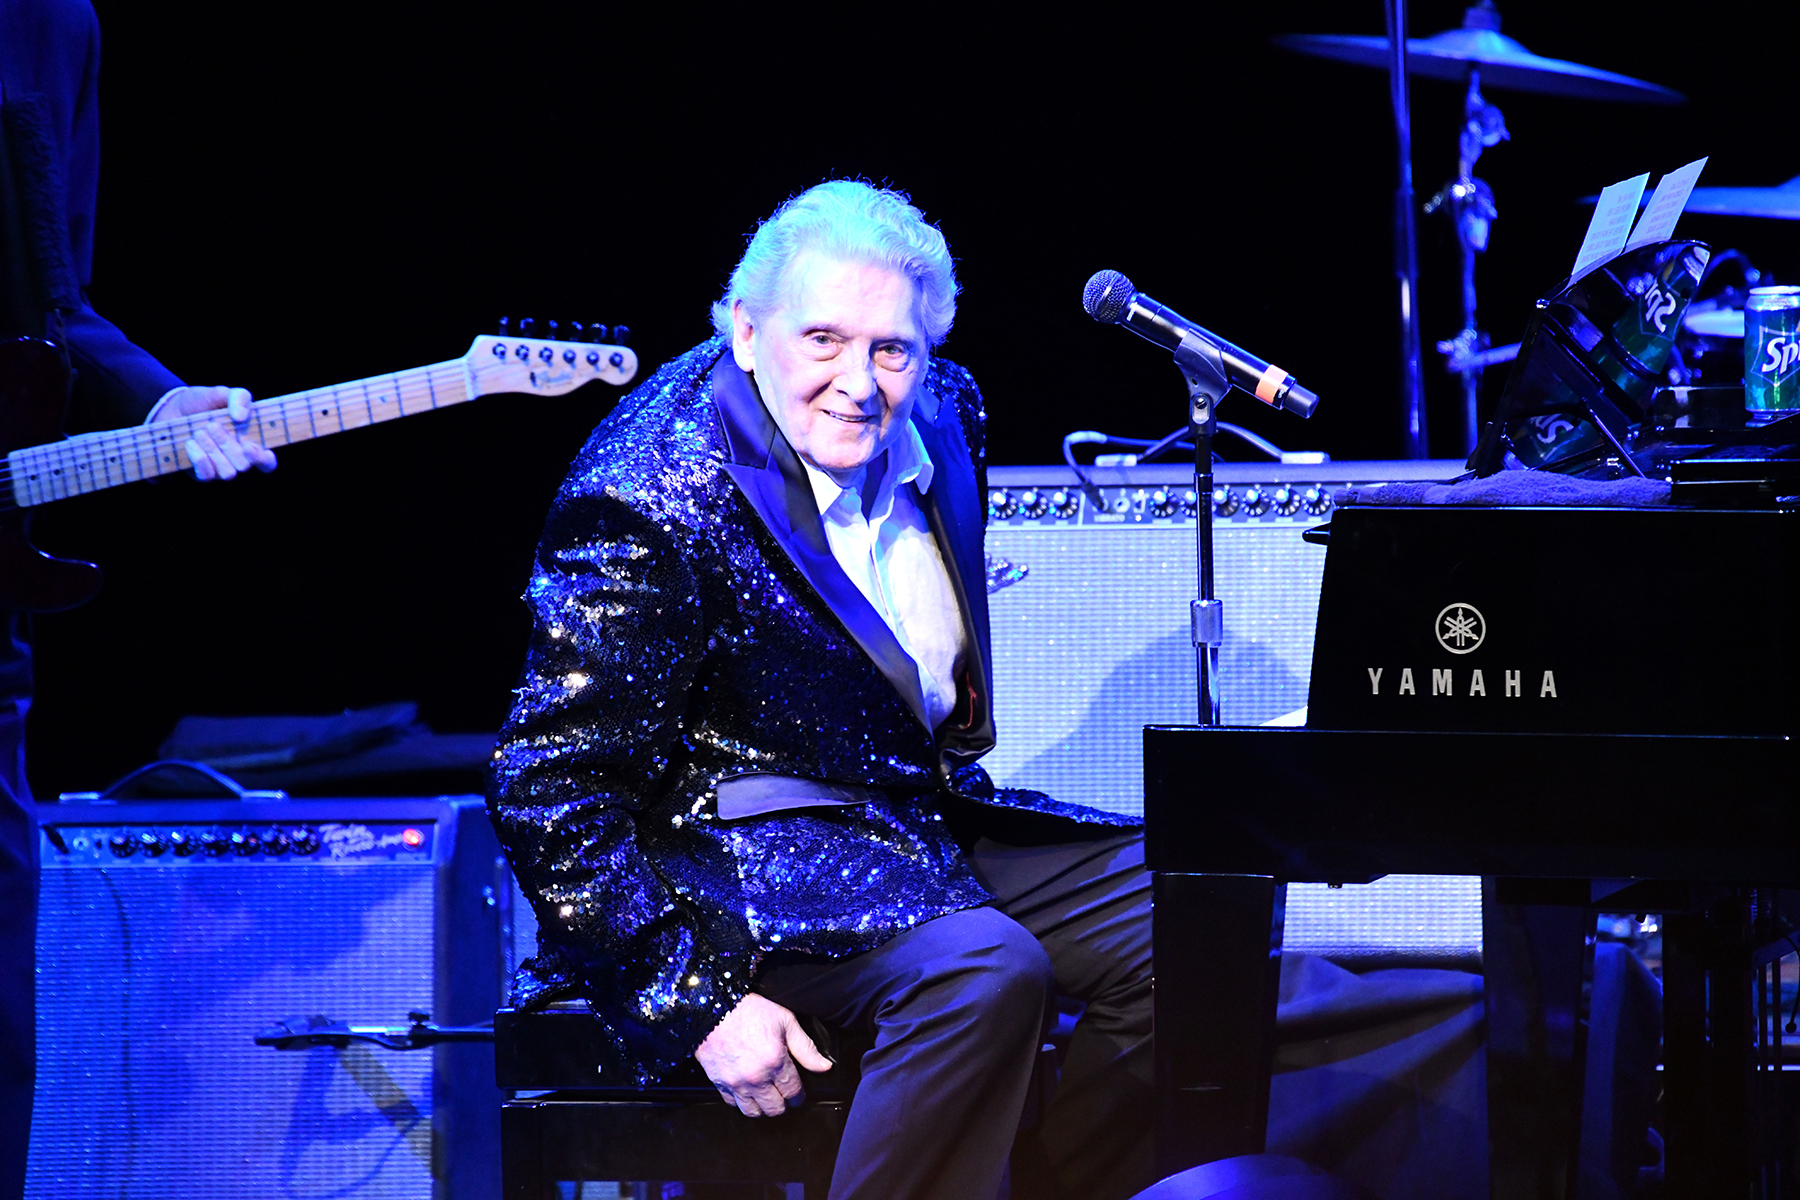 CERRITOS, CALIFORNIA - NOVEMBER 17: Rock and Roll Hall of Fame musician Jerry Lee Lewis performs onstage at Cerritos Center for the Performing Arts on November 17, 2018 in Cerritos, California. (Photo by Scott Dudelson/Getty Images)